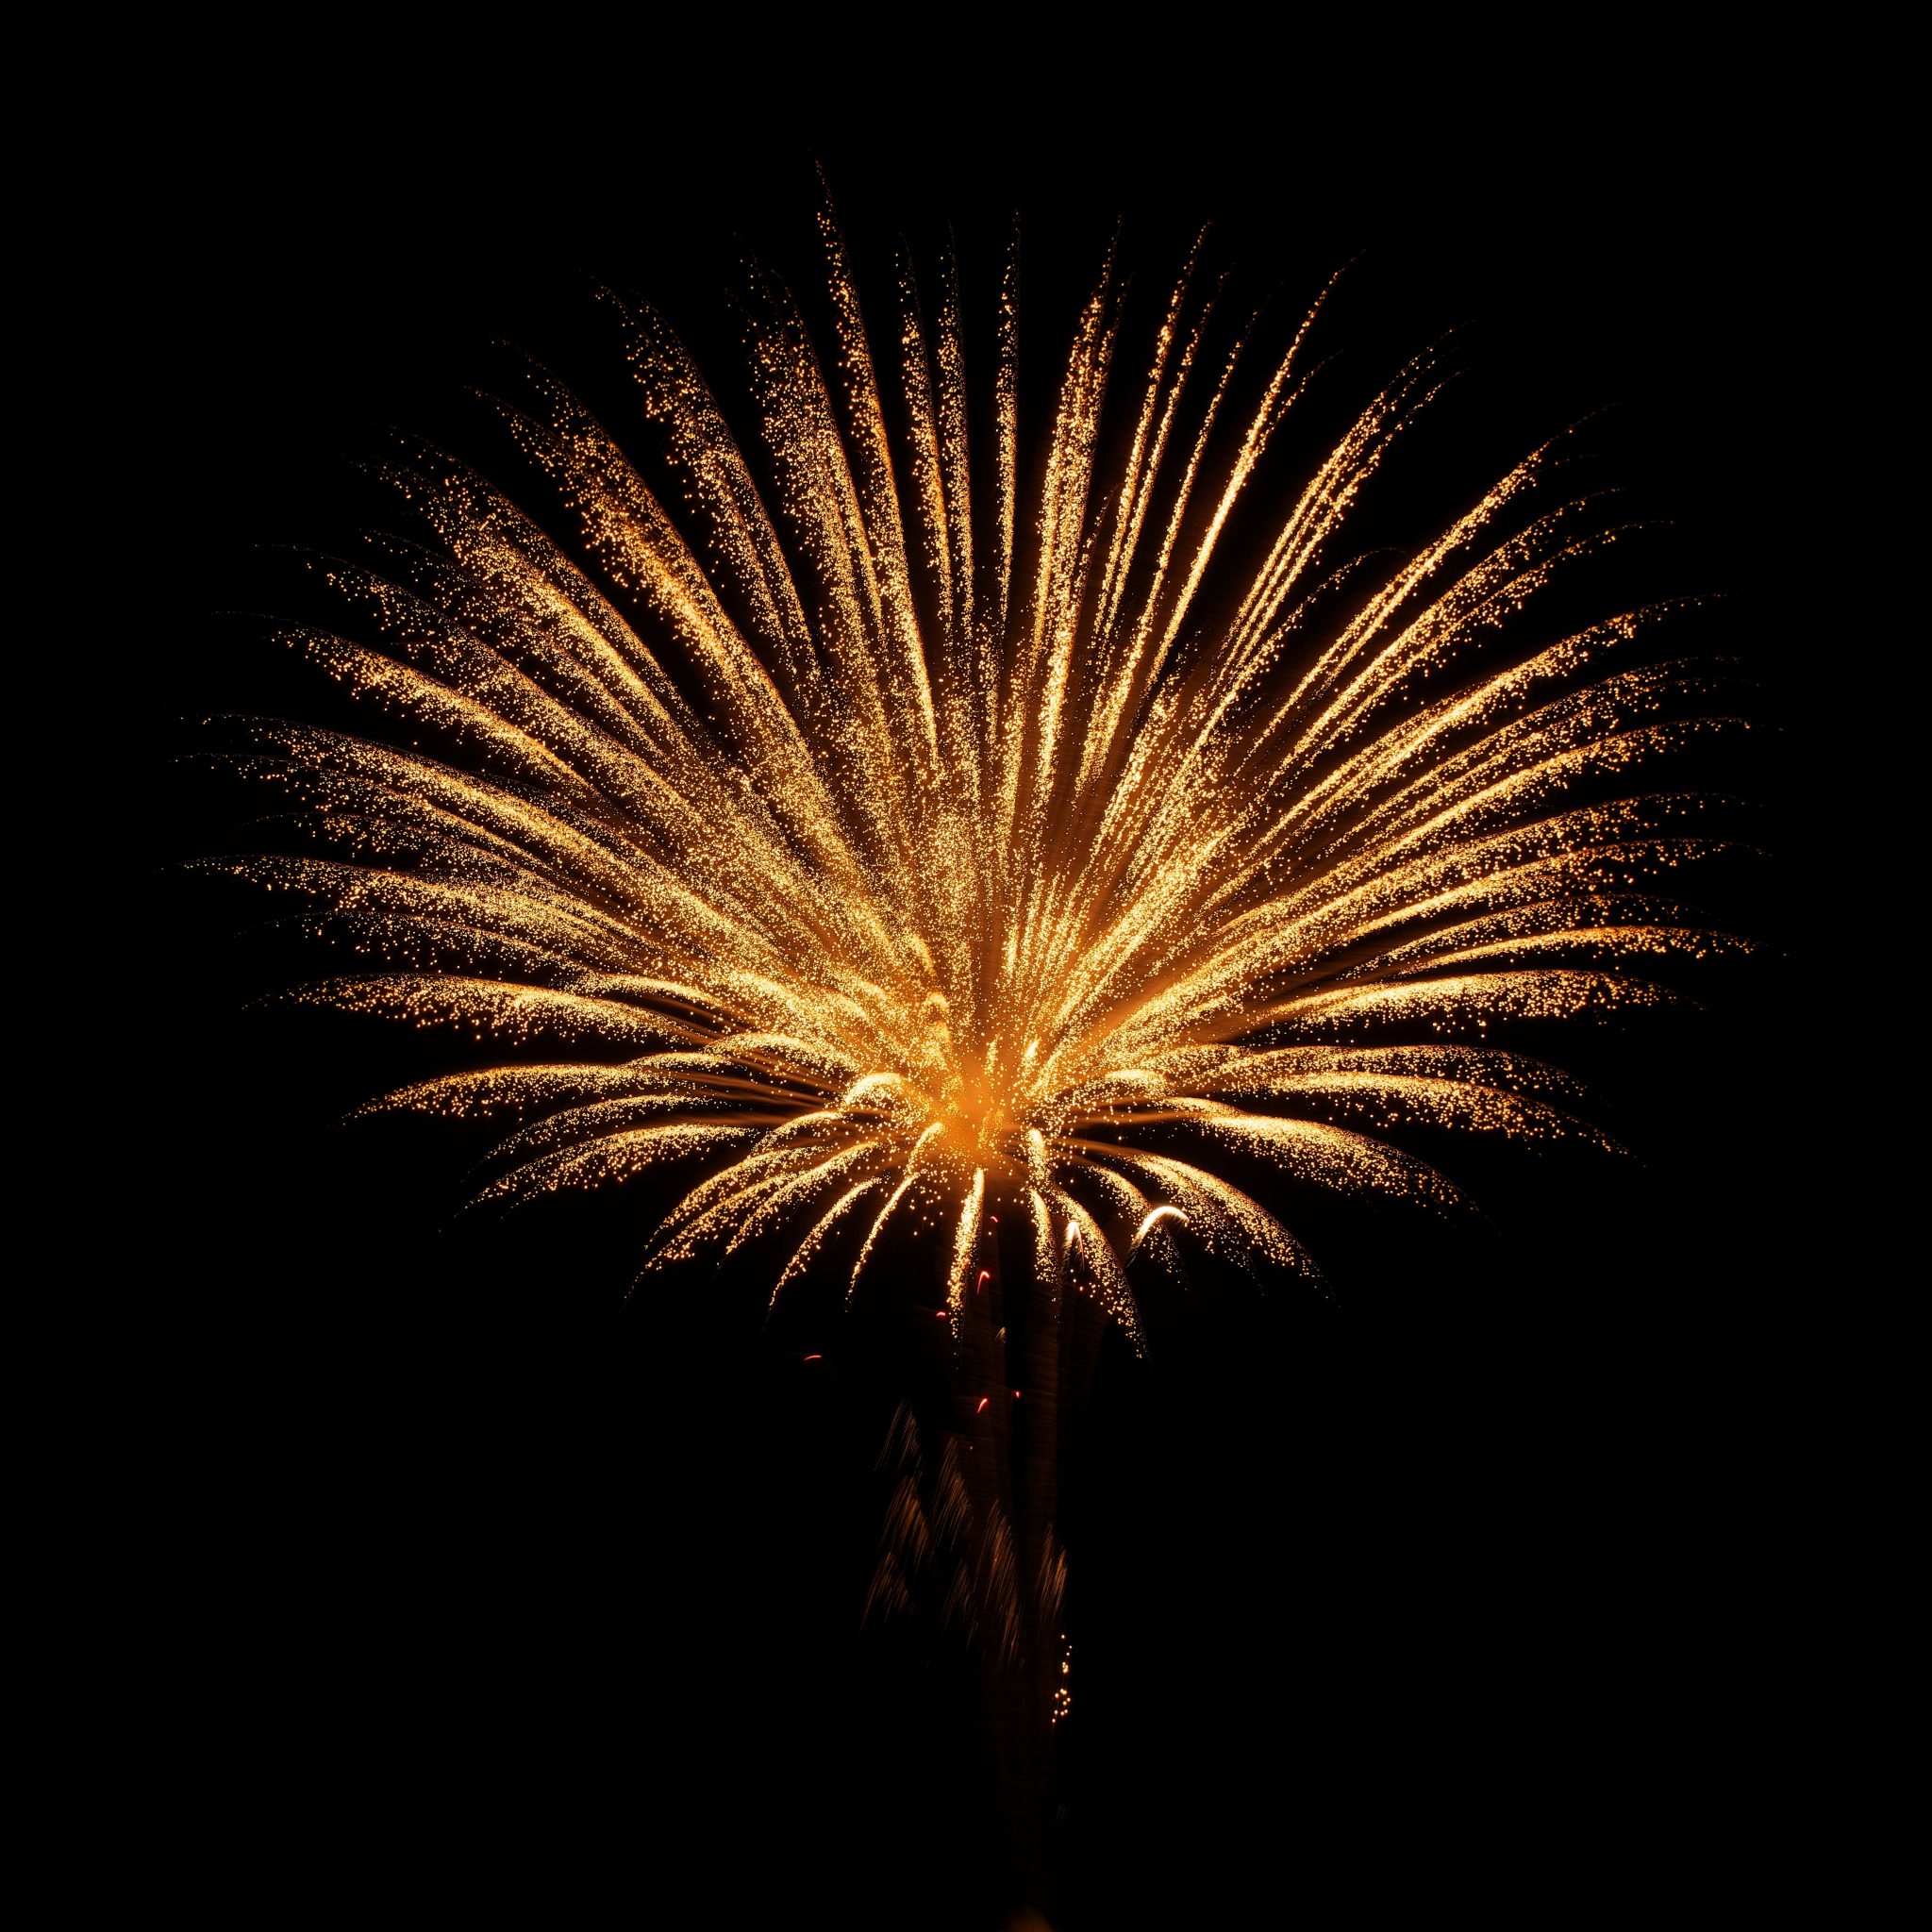 ashes into fireworks